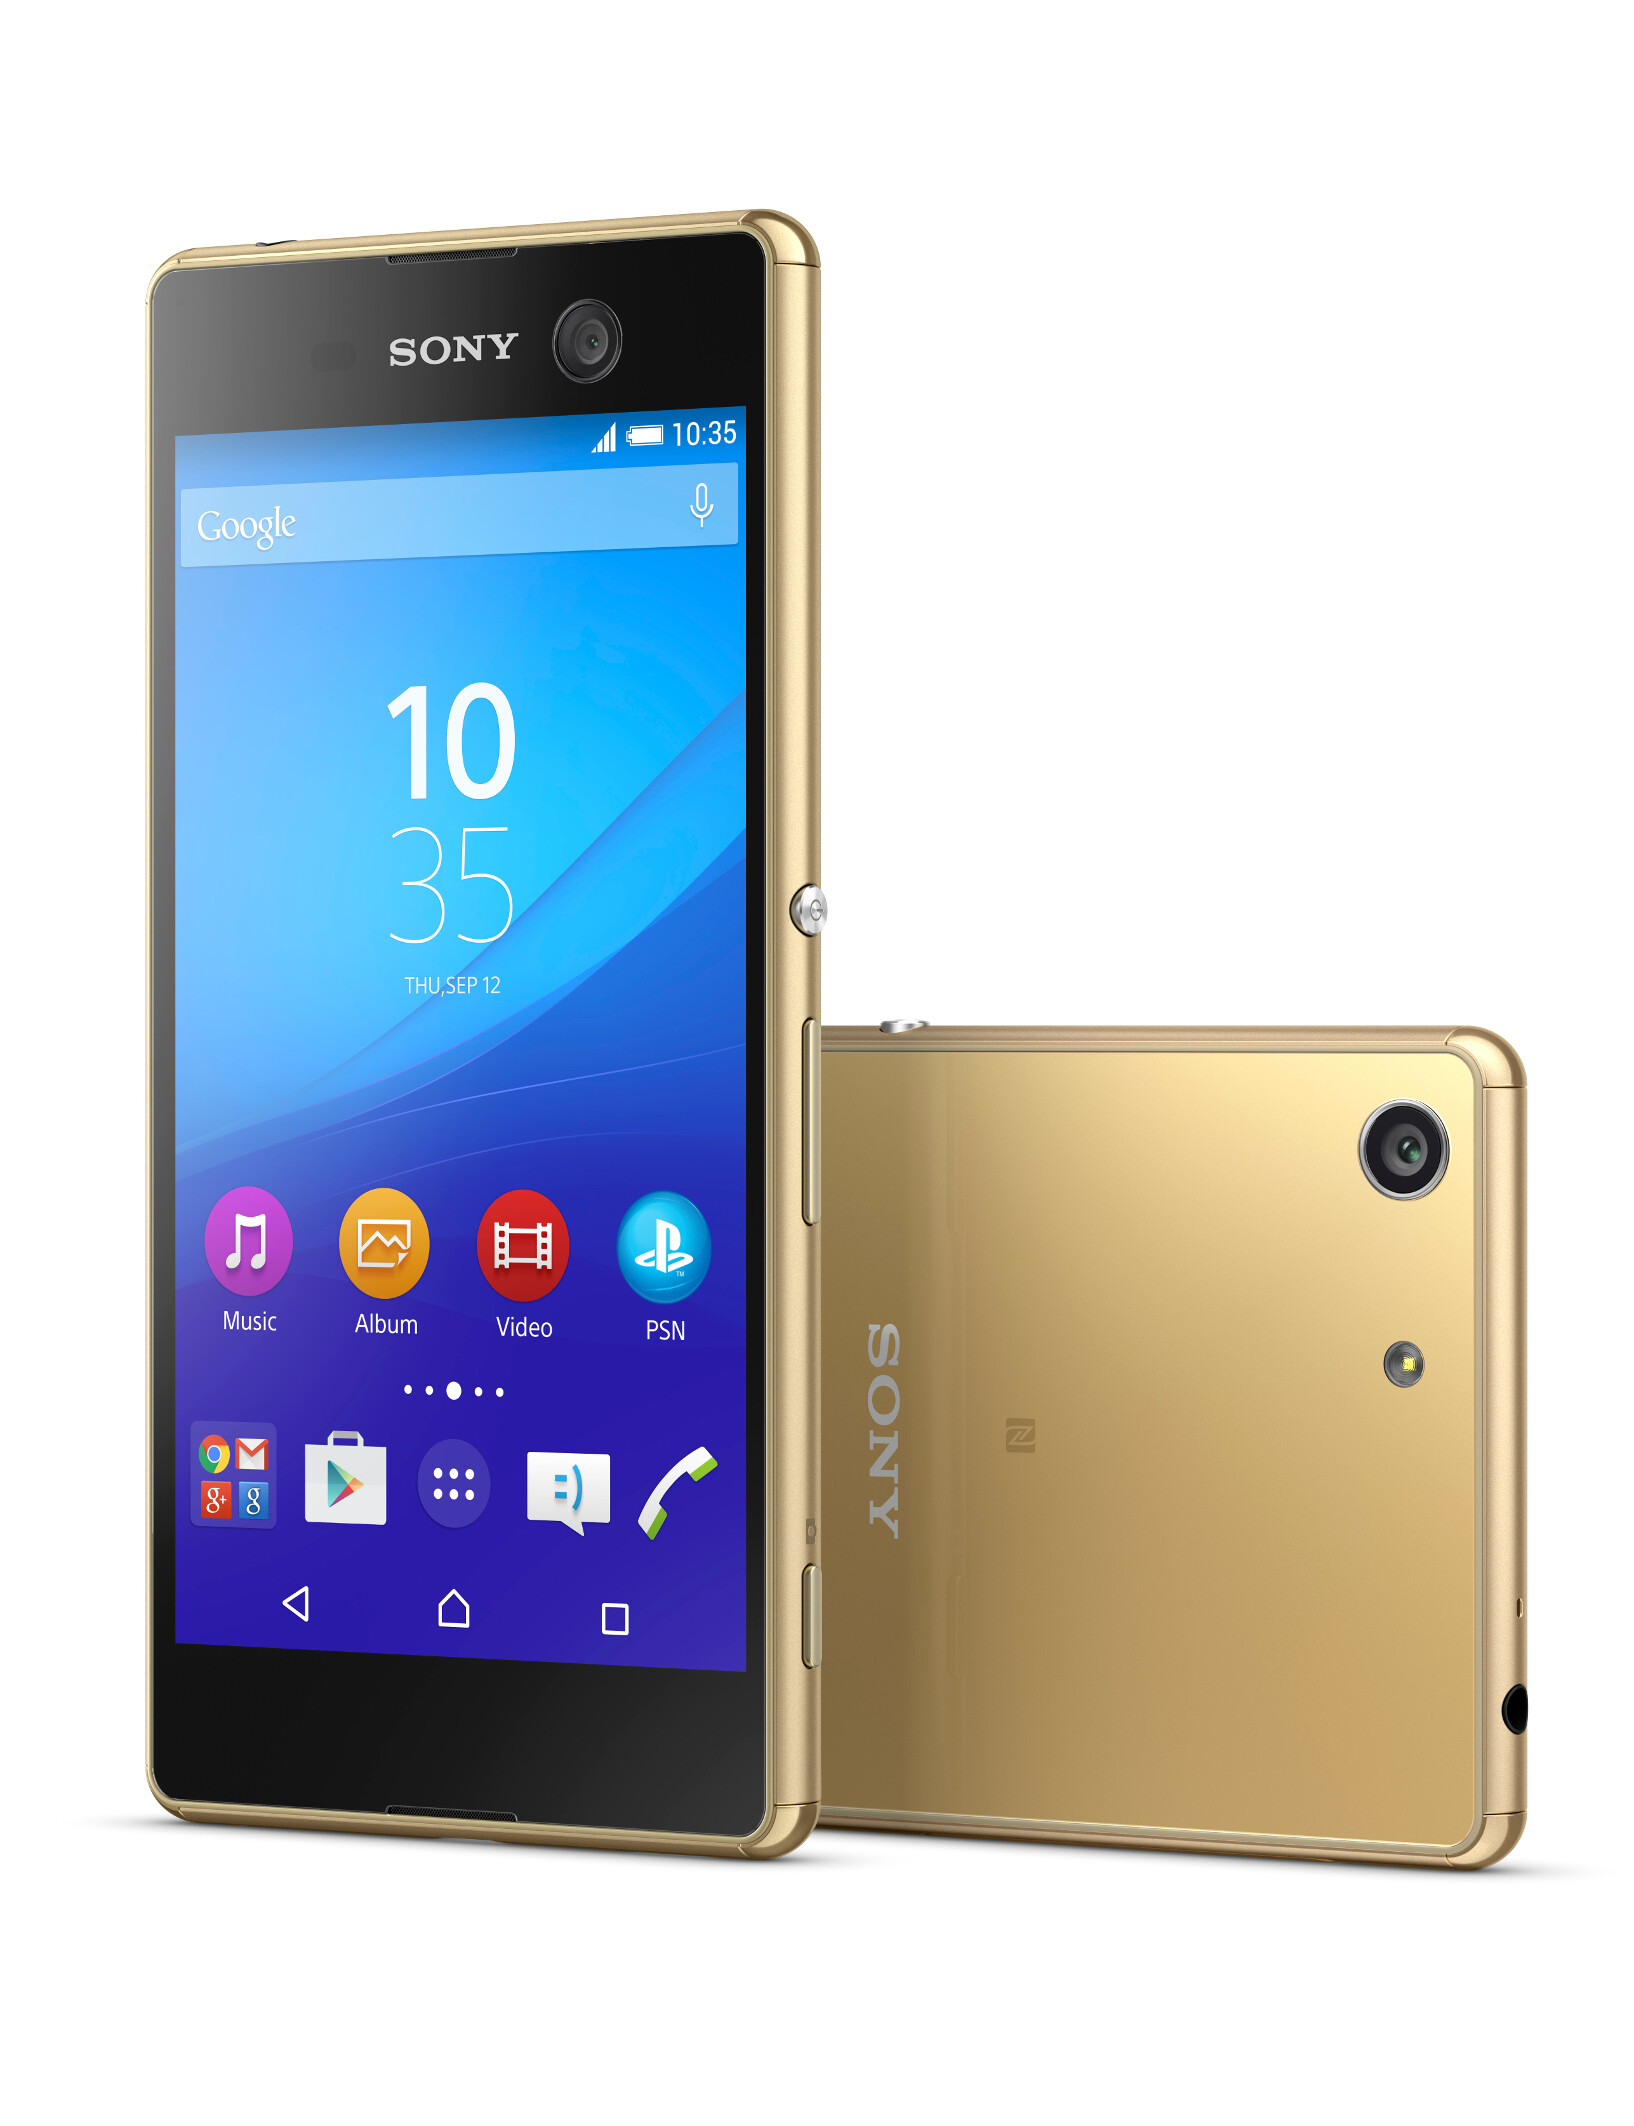 sony xperia m5 price and specification the